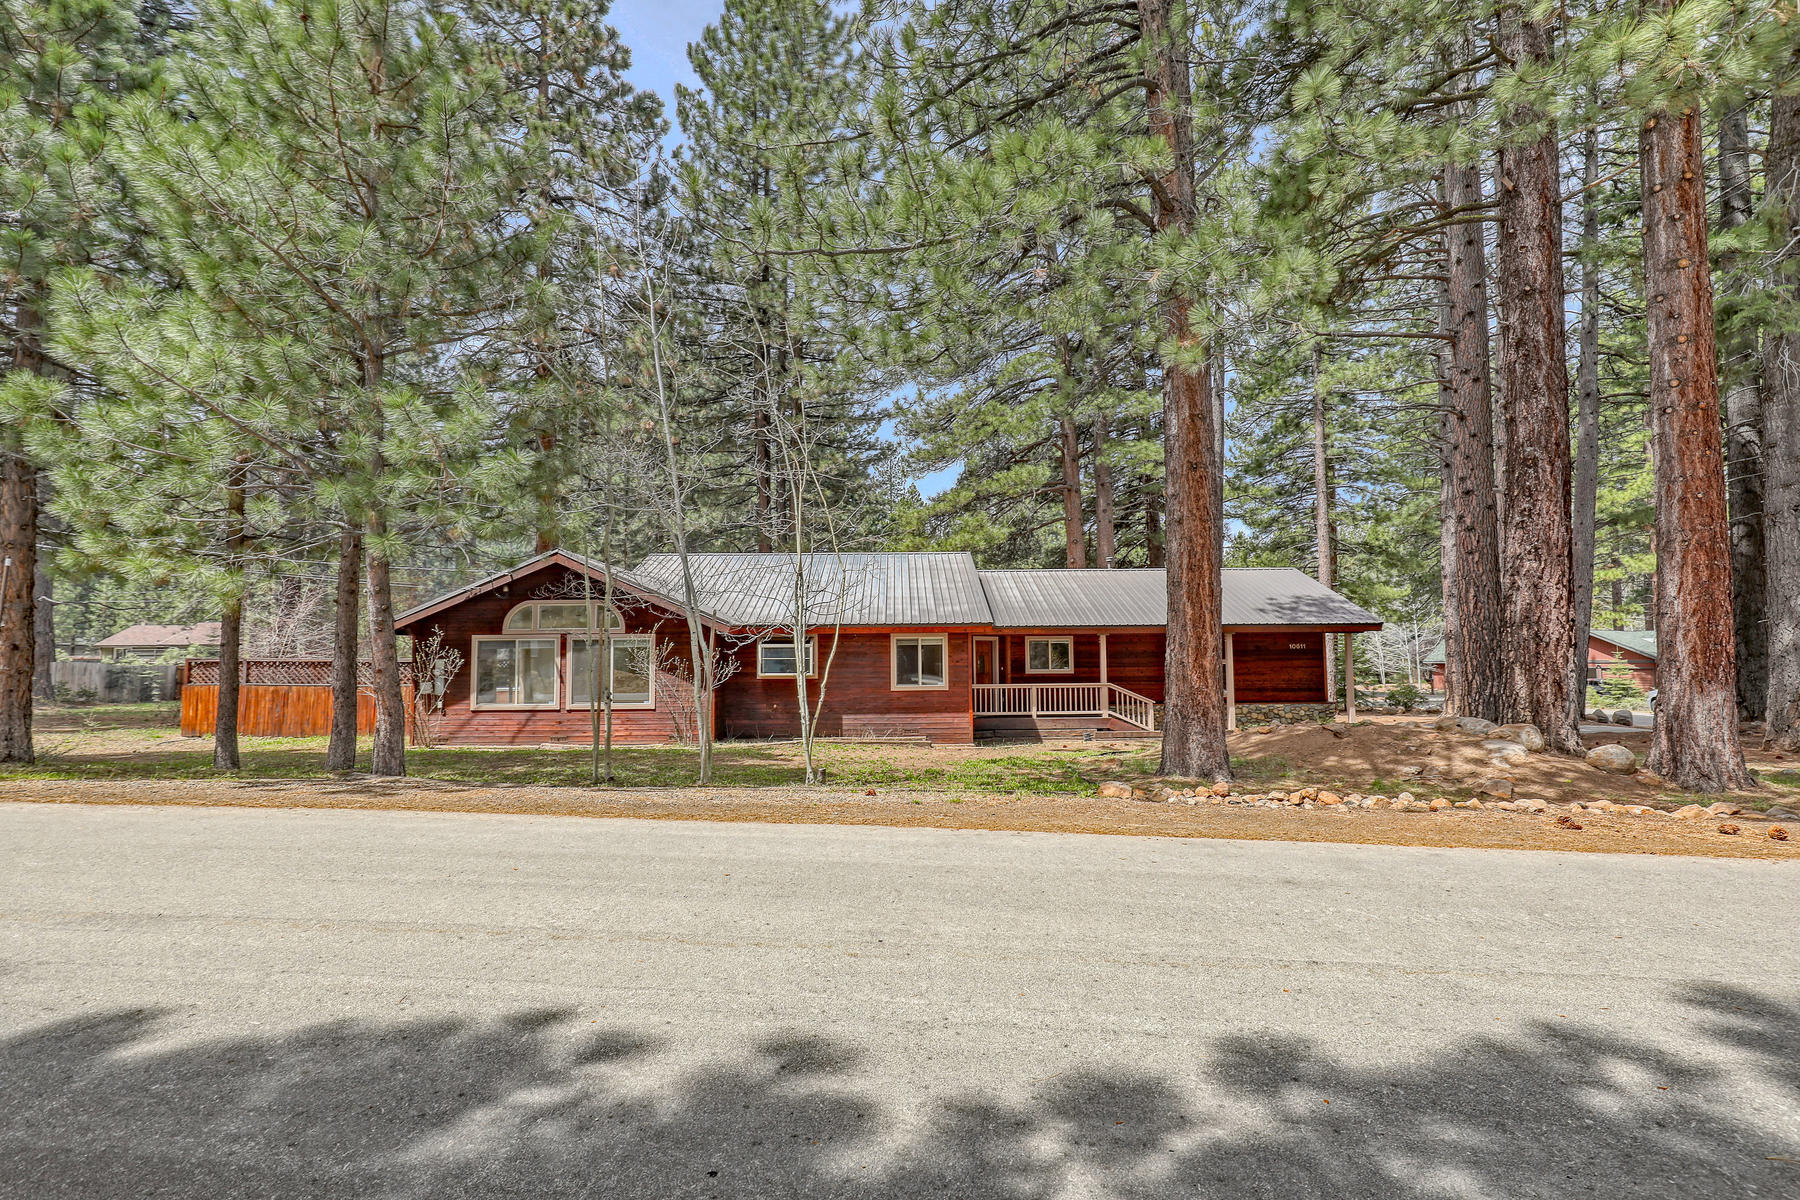 Single Family Homes for Active at Sierra Meadows - Truckee 10611 Torrey Pine Road Truckee, California 96161 United States